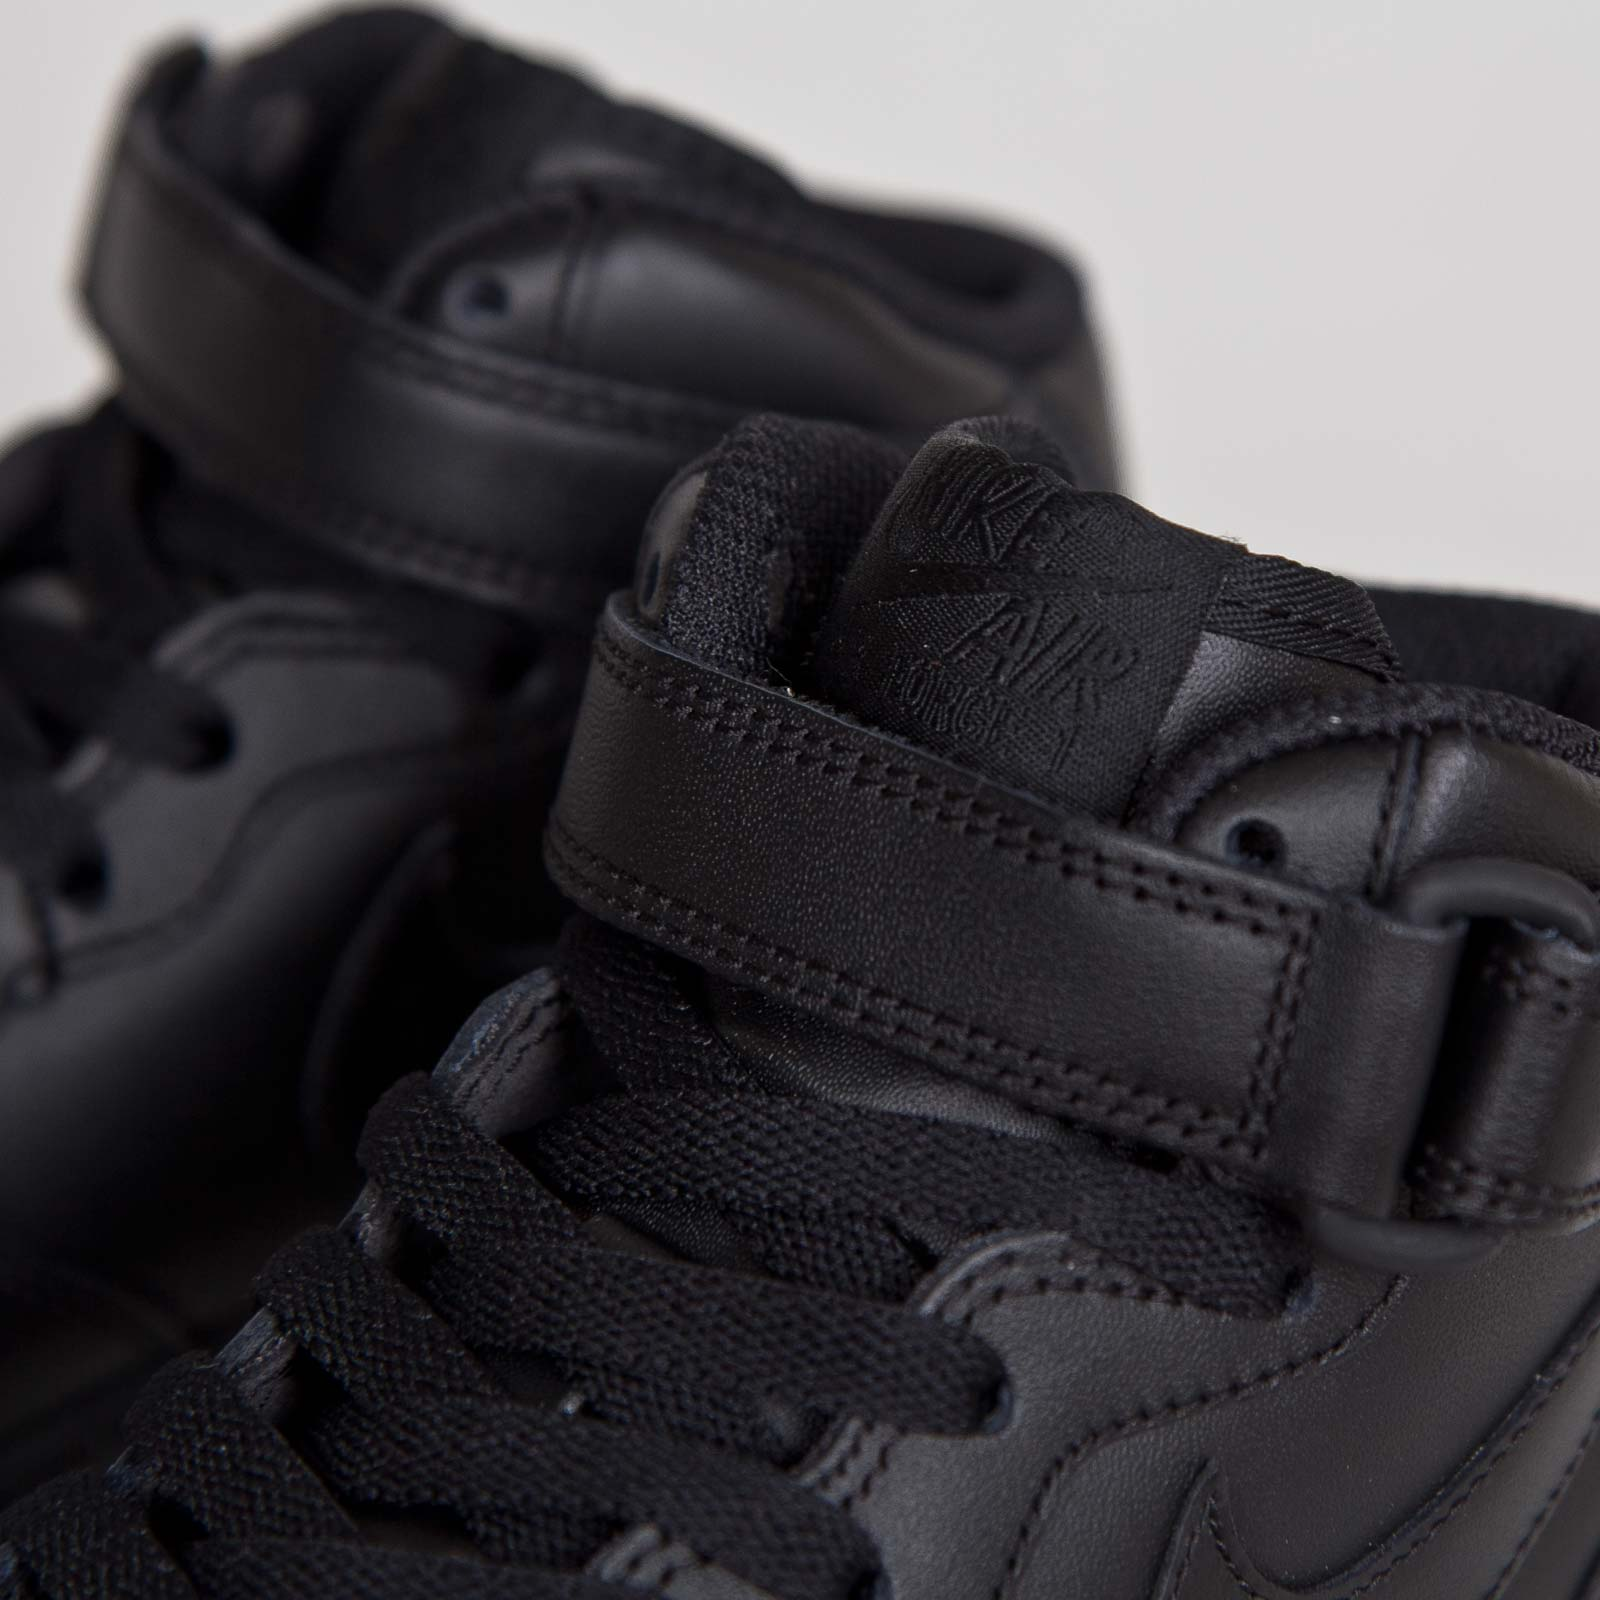 new product 38244 cda83 Nike Wmns Air Force 1 Mid 07 LE - 7. Close